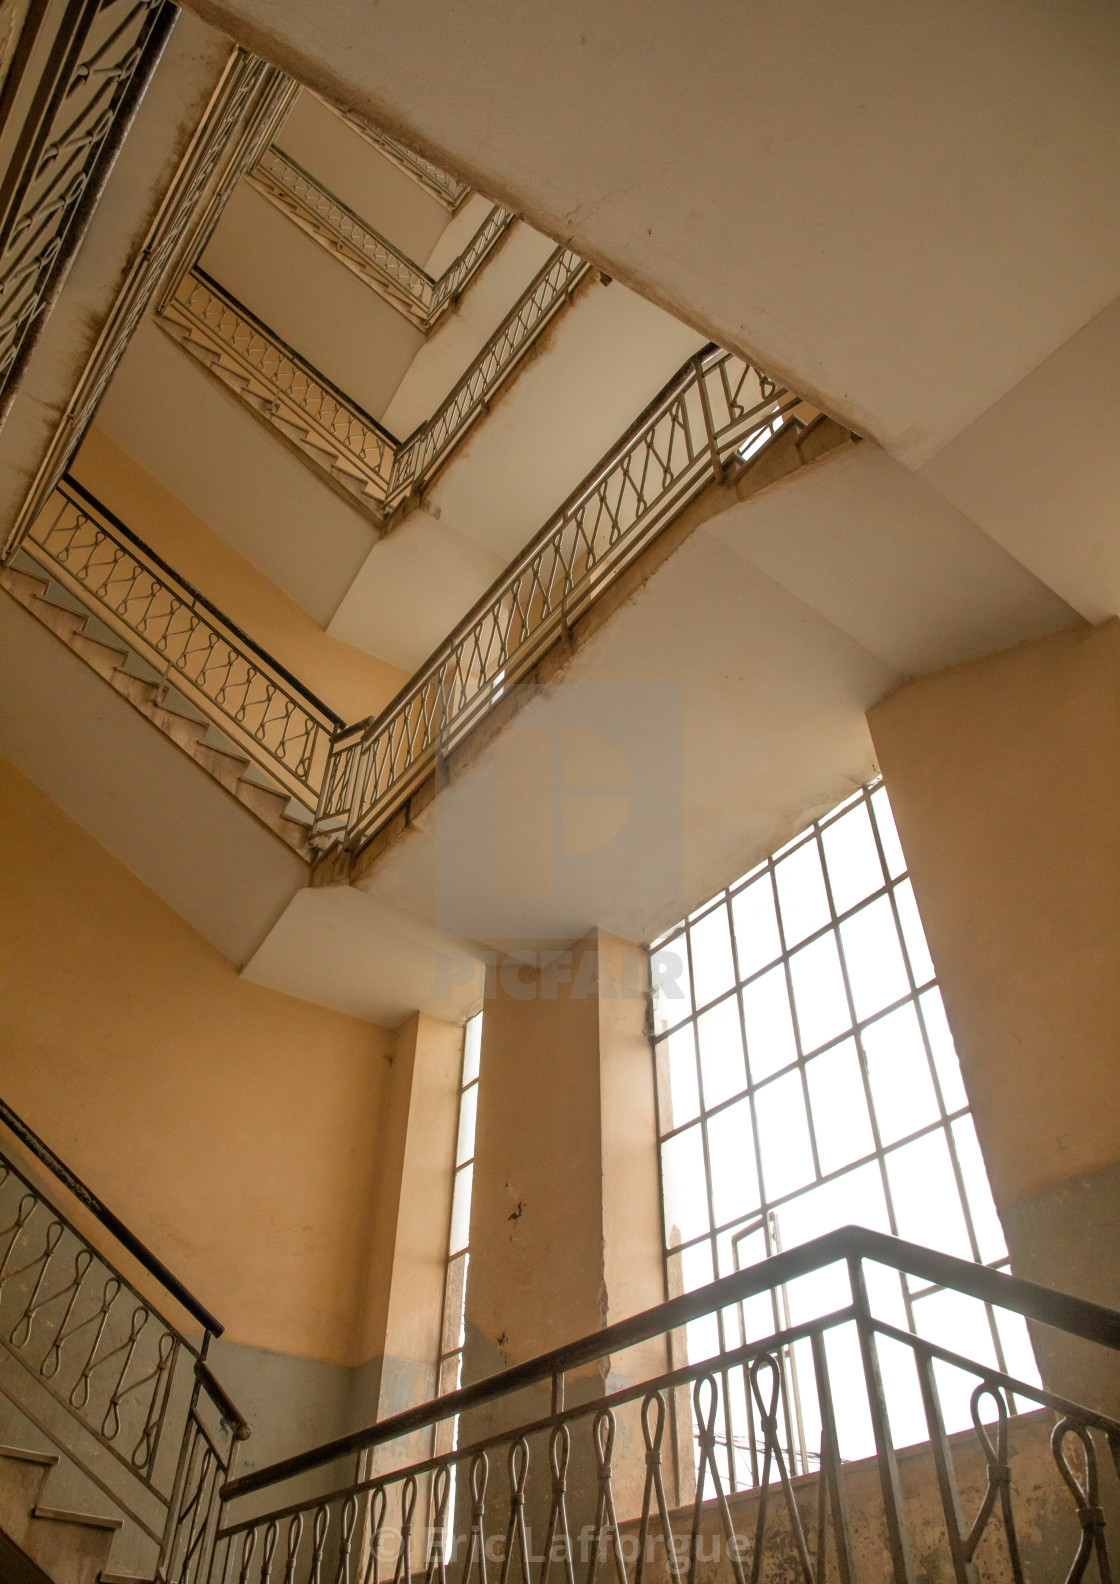 https www picfair com pics 09034513 old art deco style stairs from the italian colonial times central region